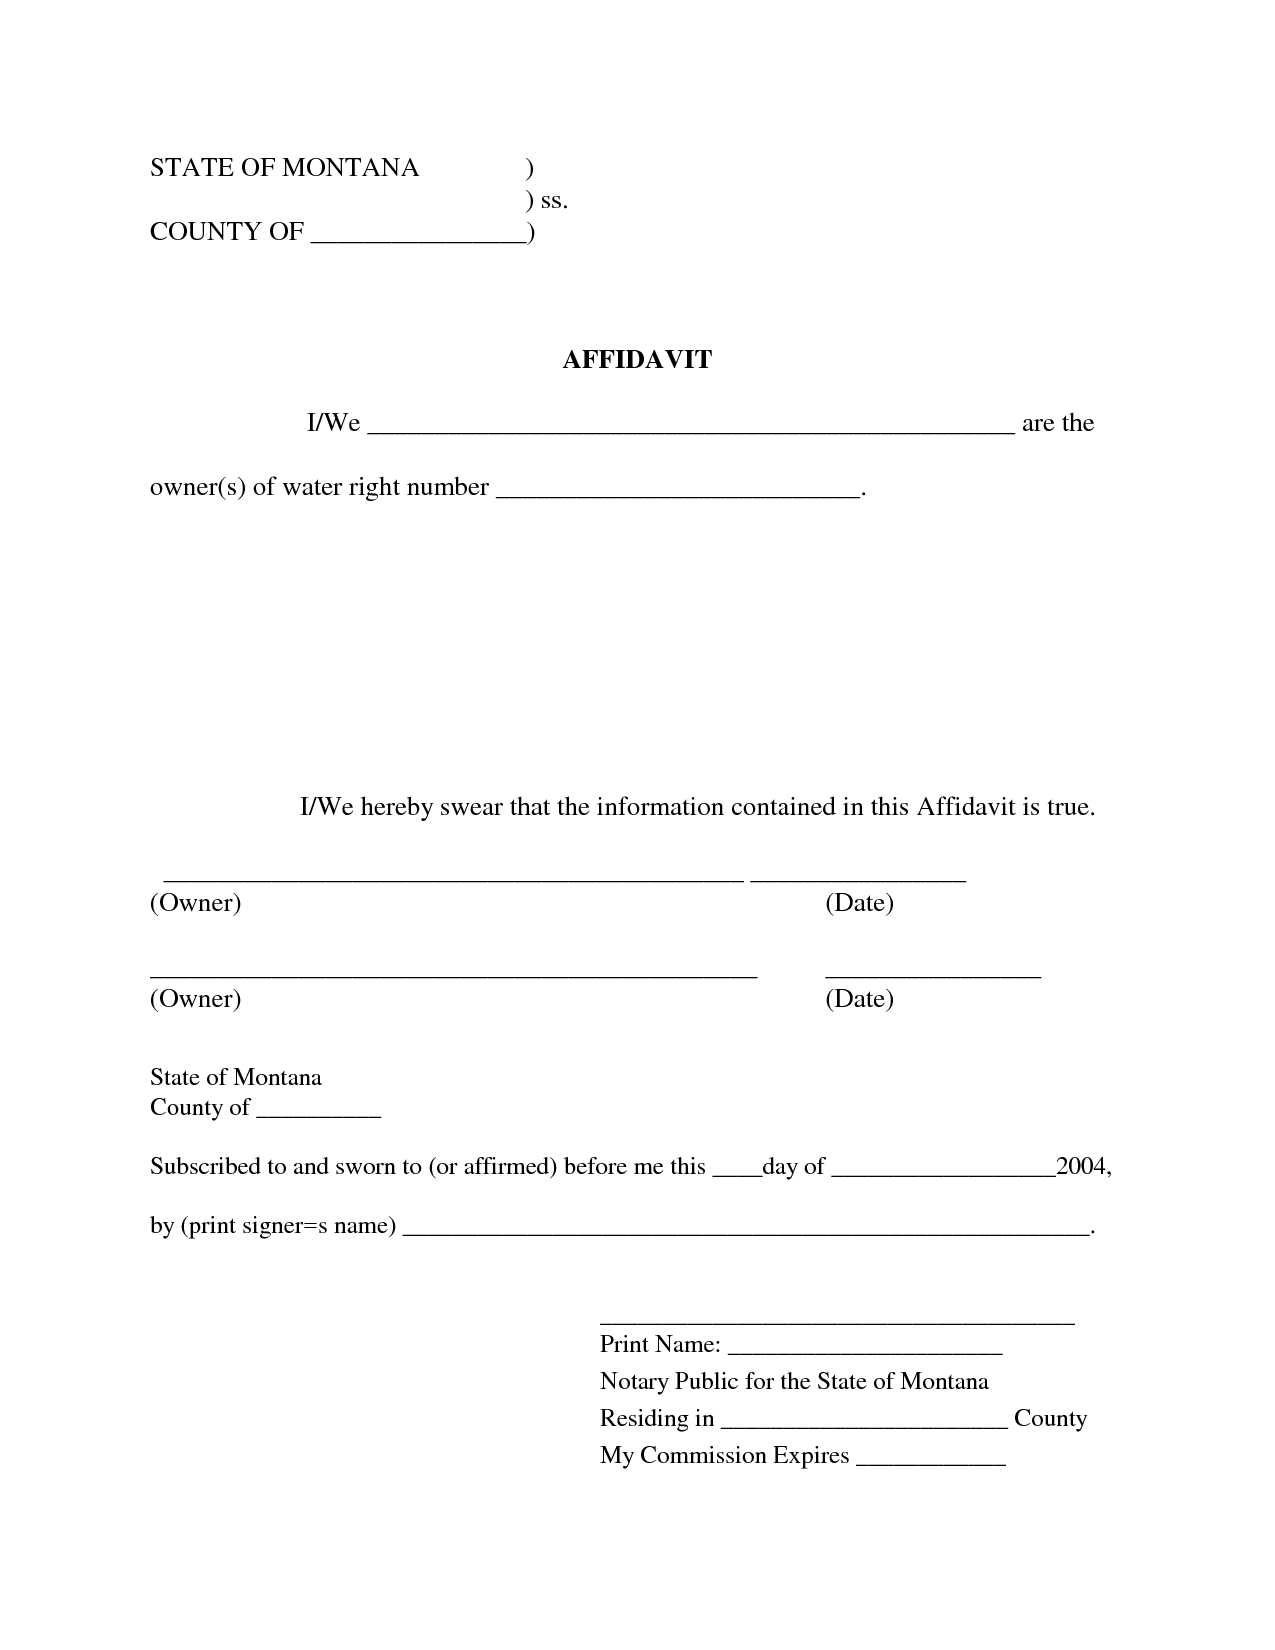 High Quality Free Blank Affidavit Form | Blank Sworn Affidavit Forms Throughout Free Affidavit Form